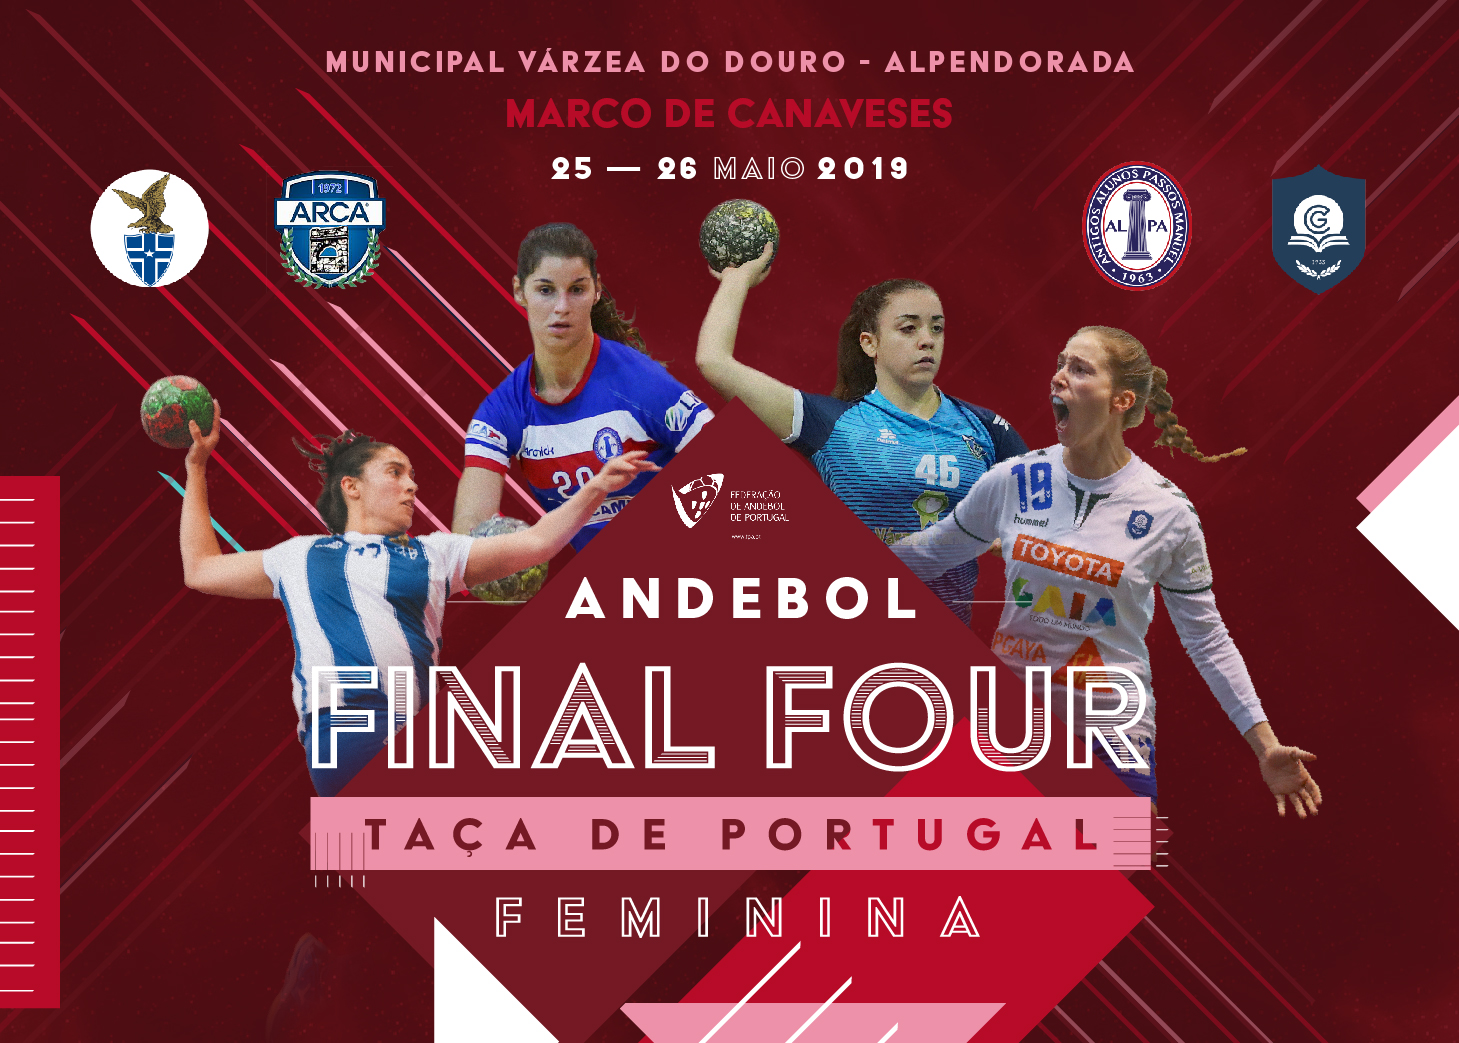 Cartaz Final Four Taça de Portugal Seniores Femininos 2018-2019